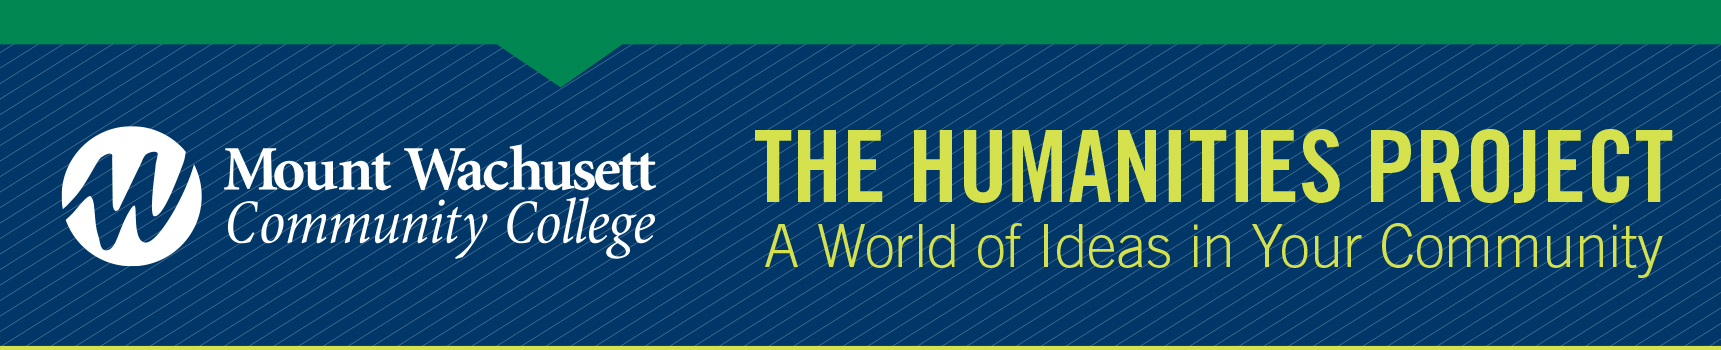 [MWCC Logo] The Humanities Project - A World of Ideas in Your Community